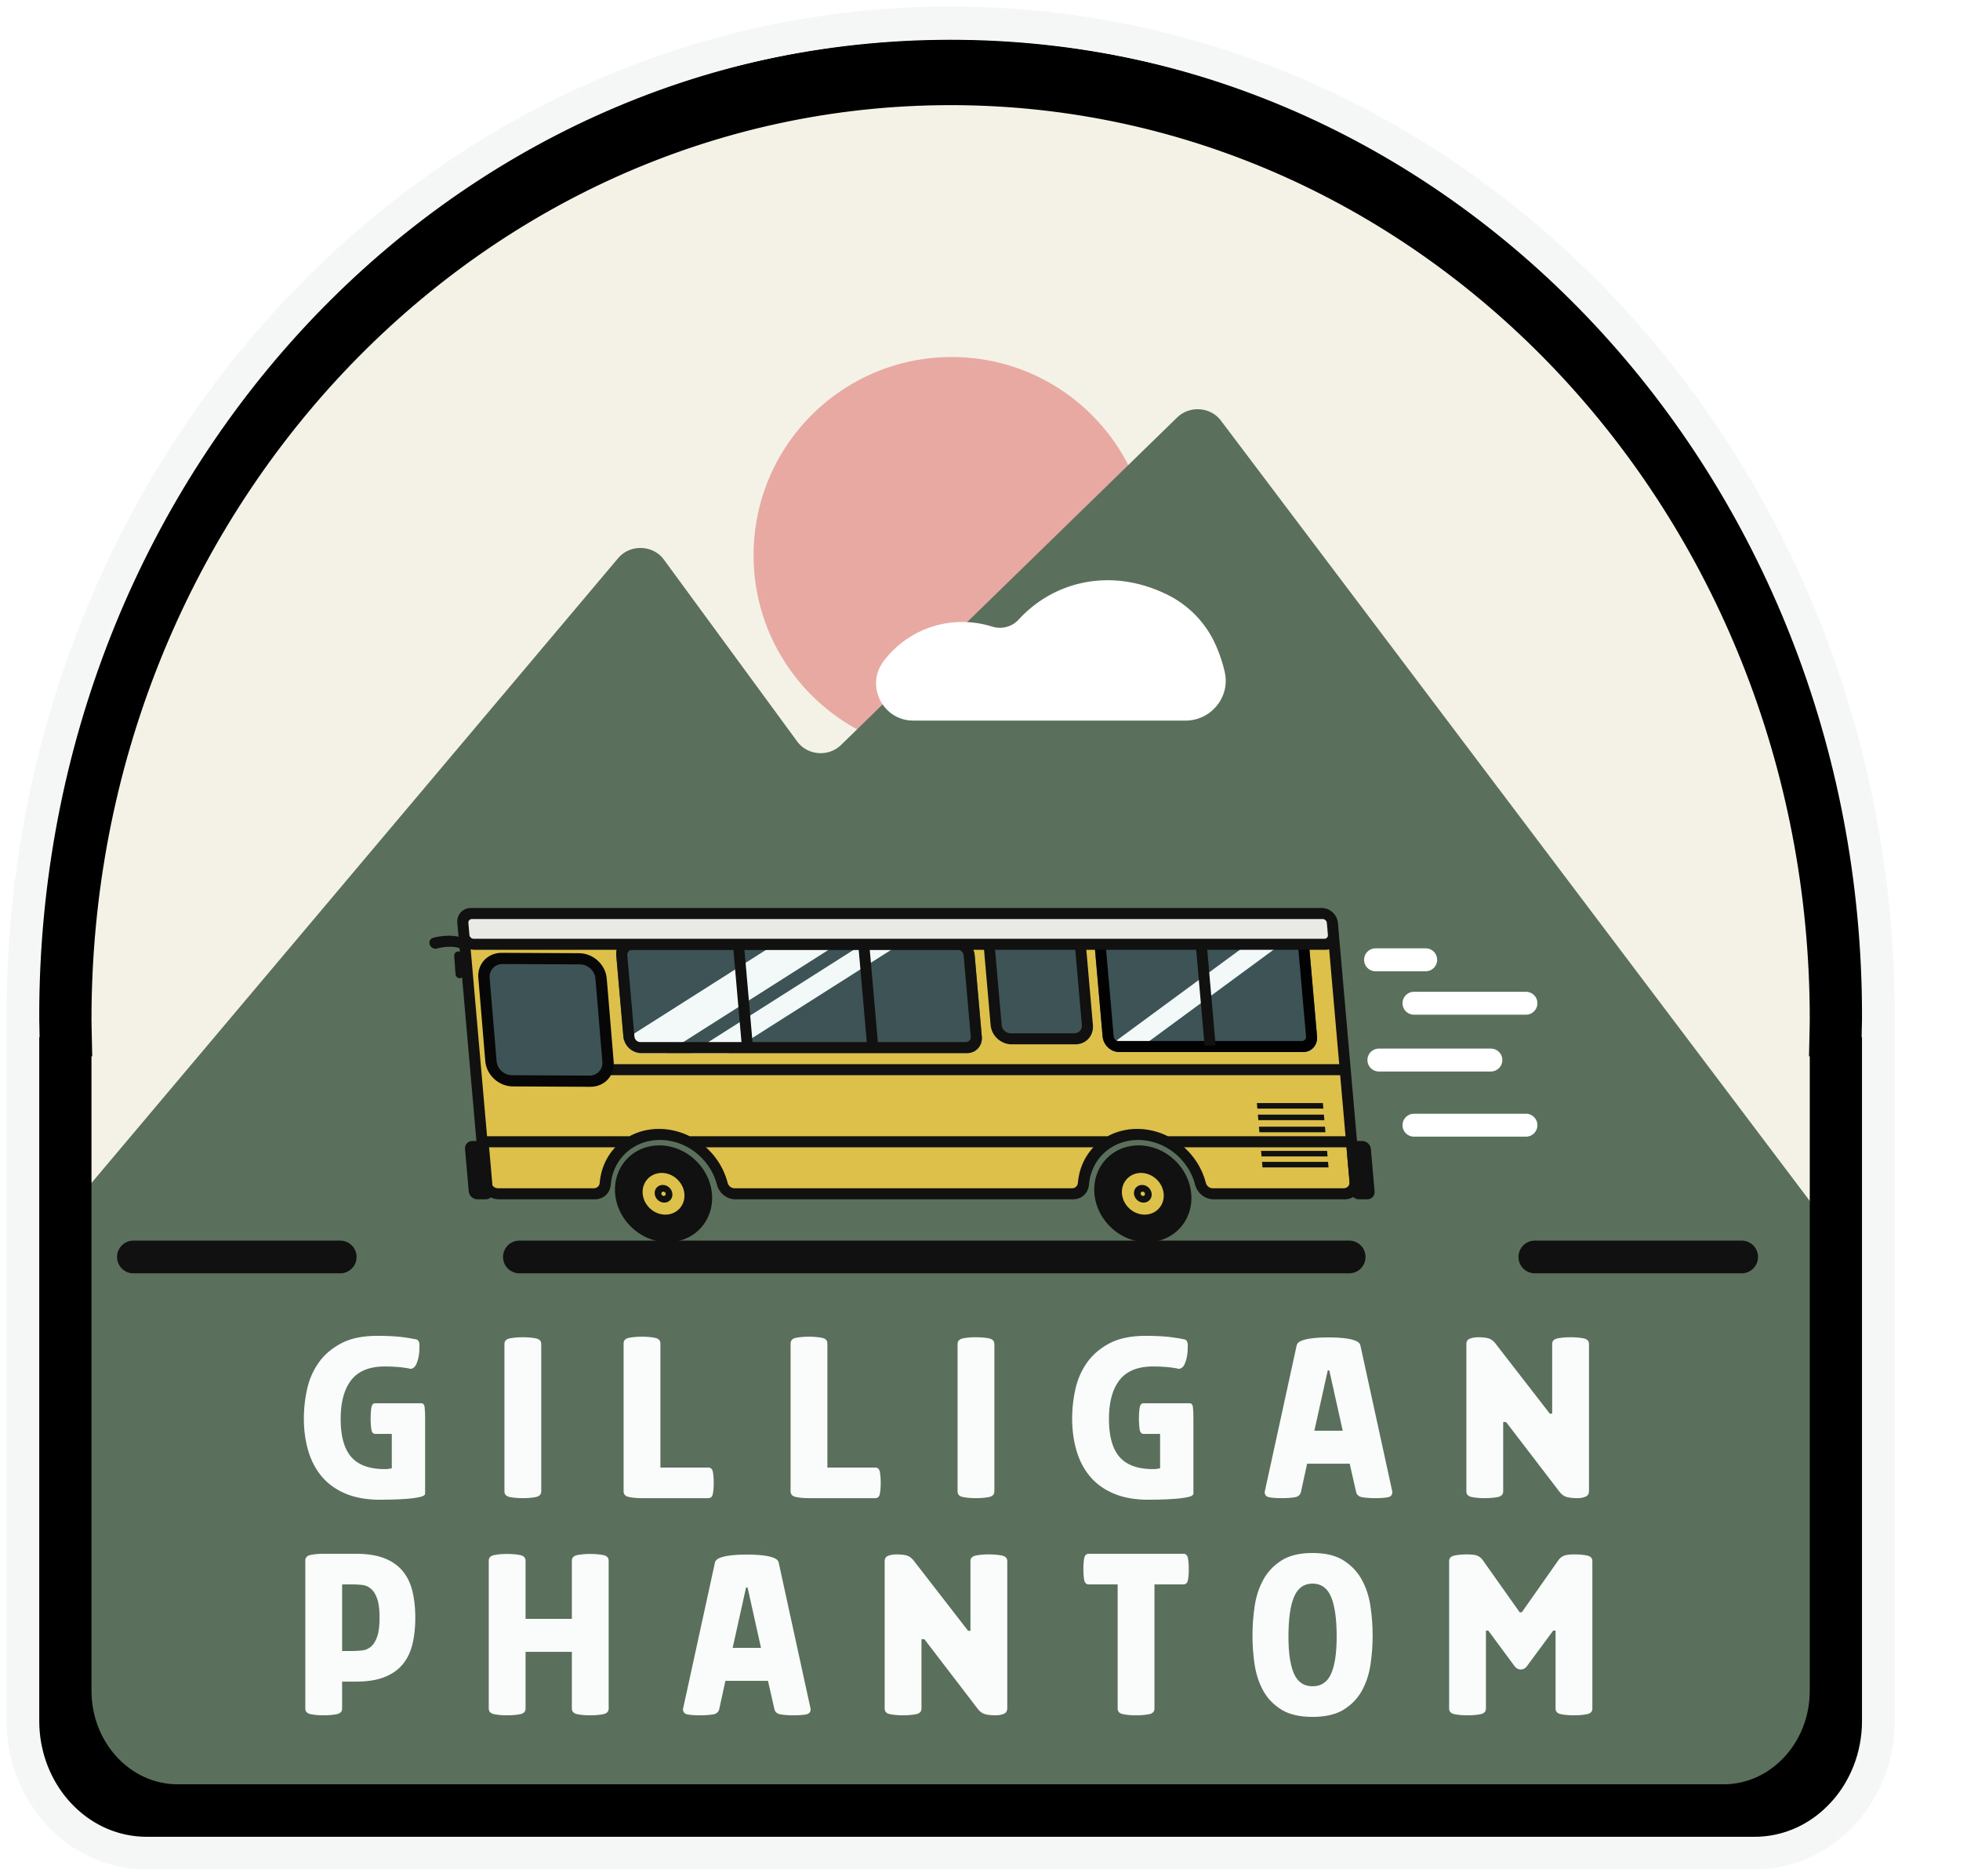 Gilligan Phantom